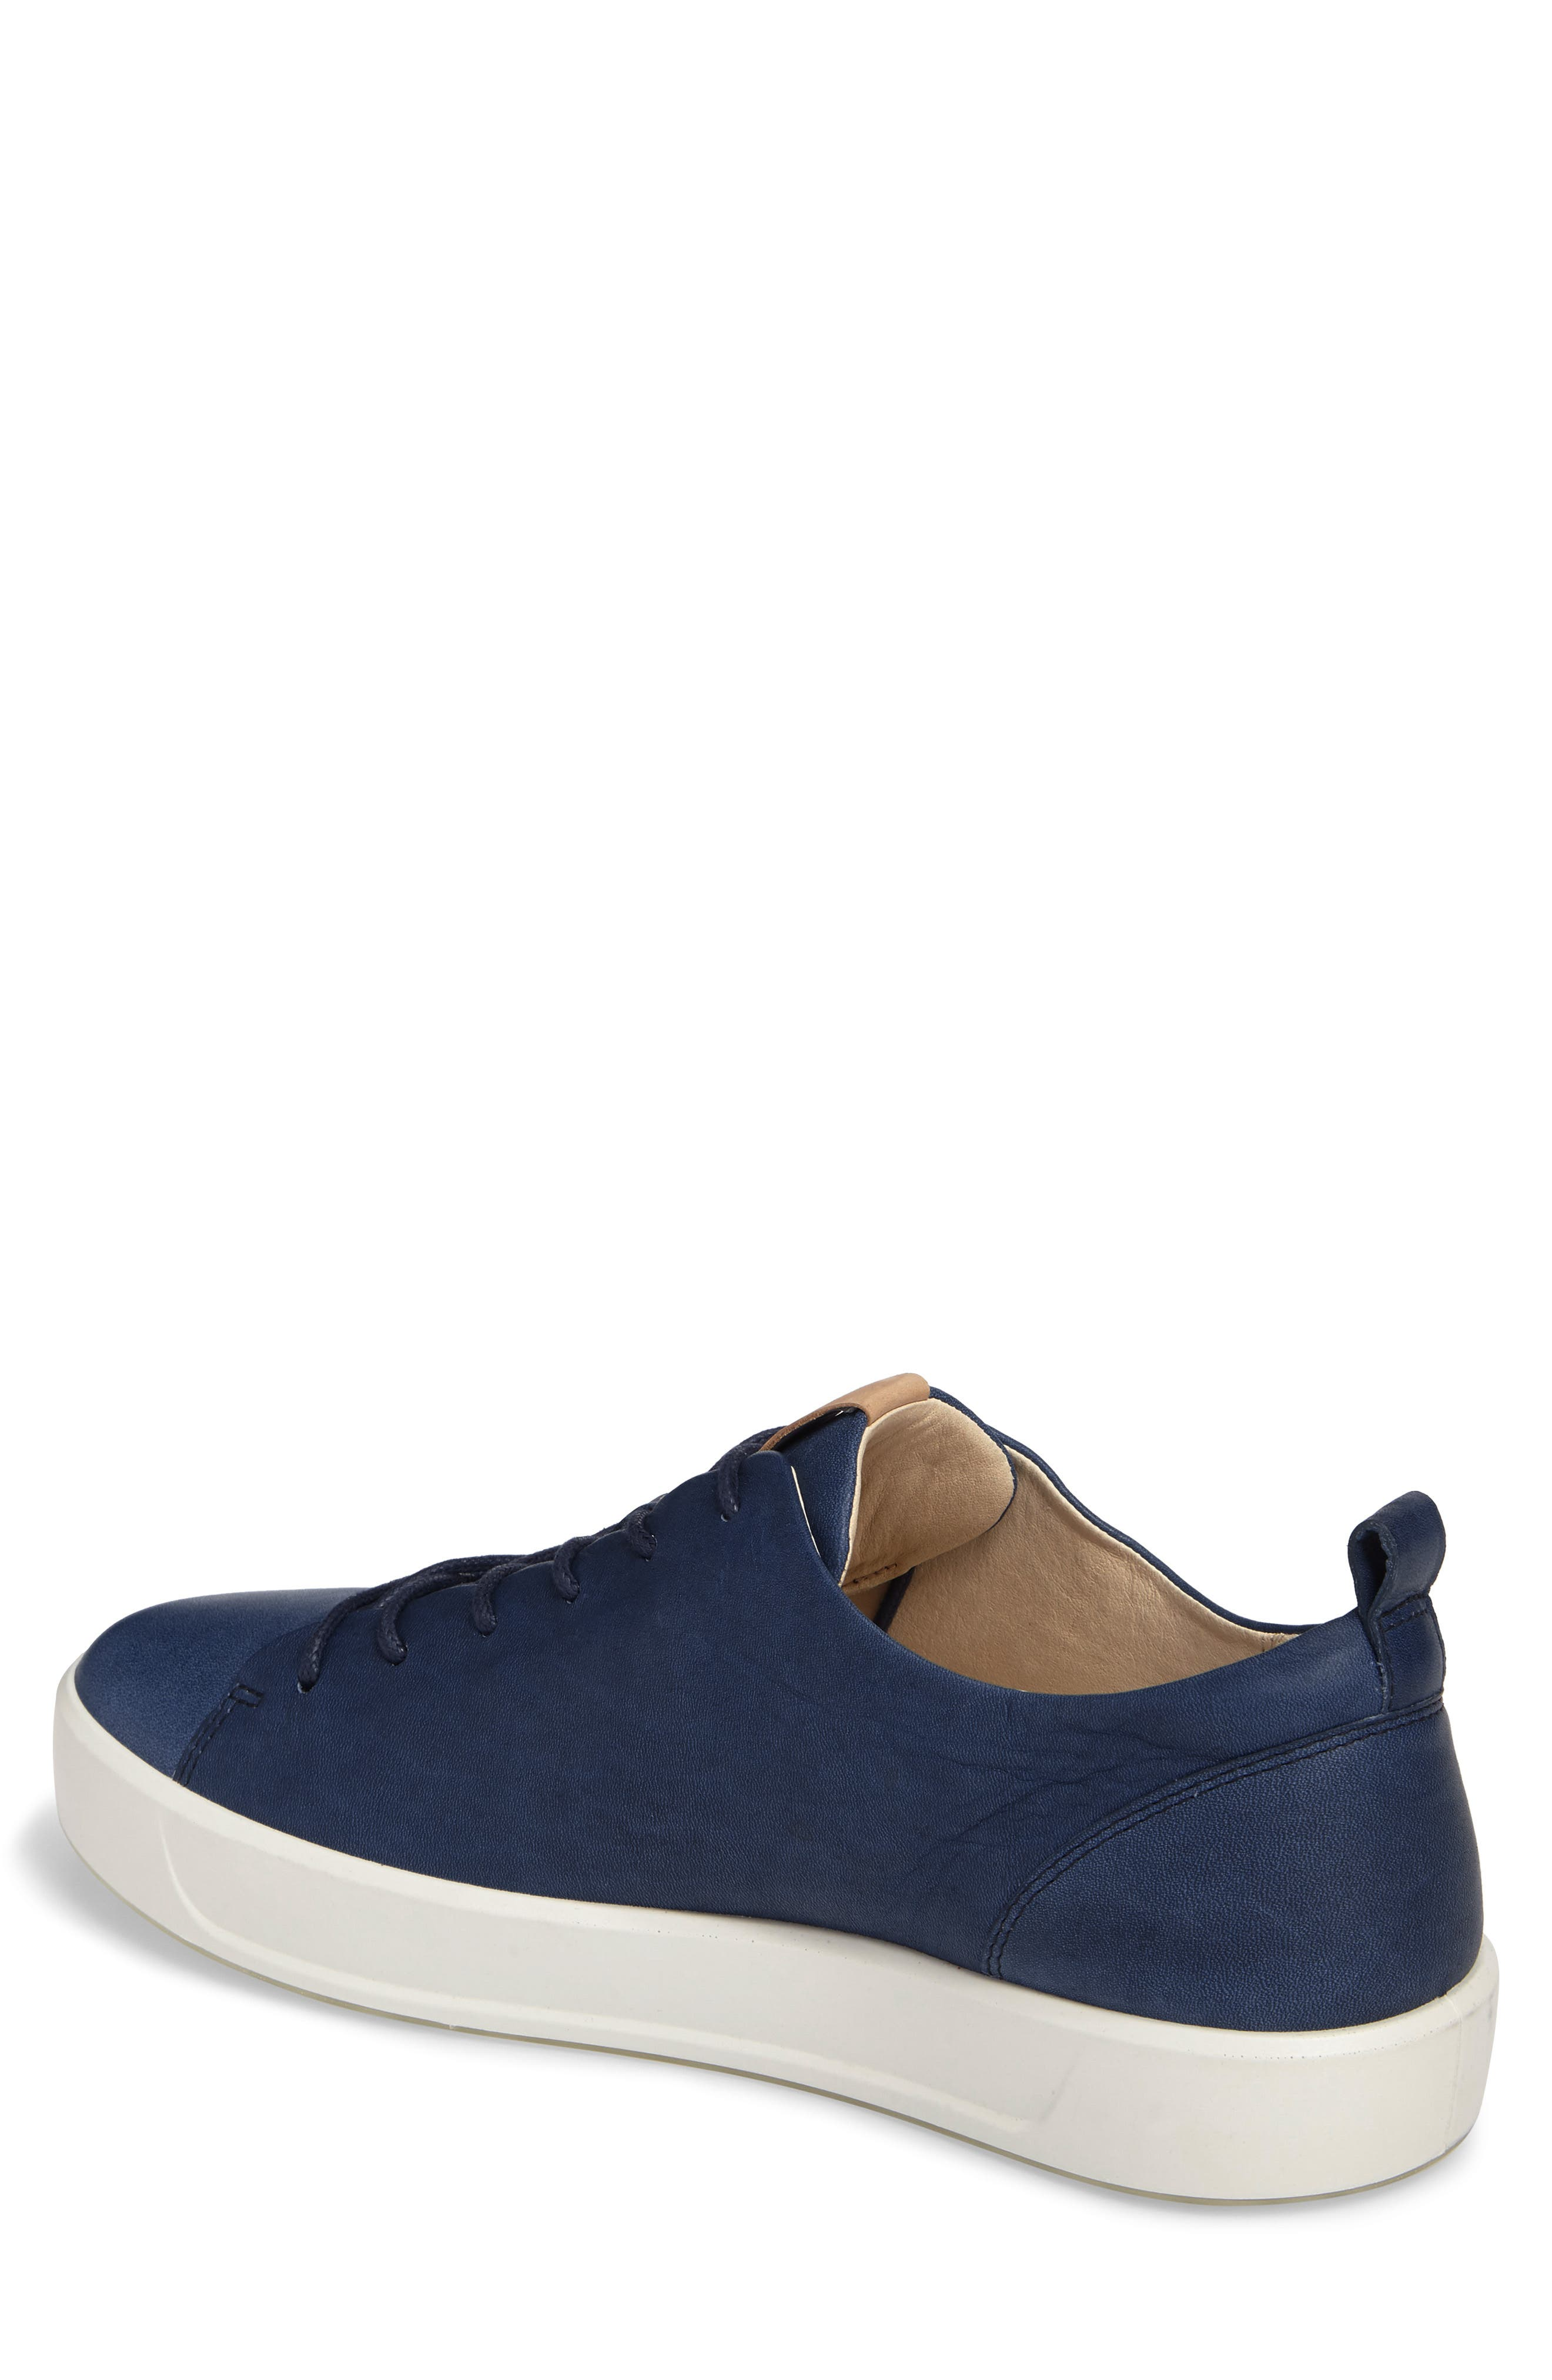 Soft 8 Sneaker,                             Alternate thumbnail 2, color,                             Indigo 7 Leather